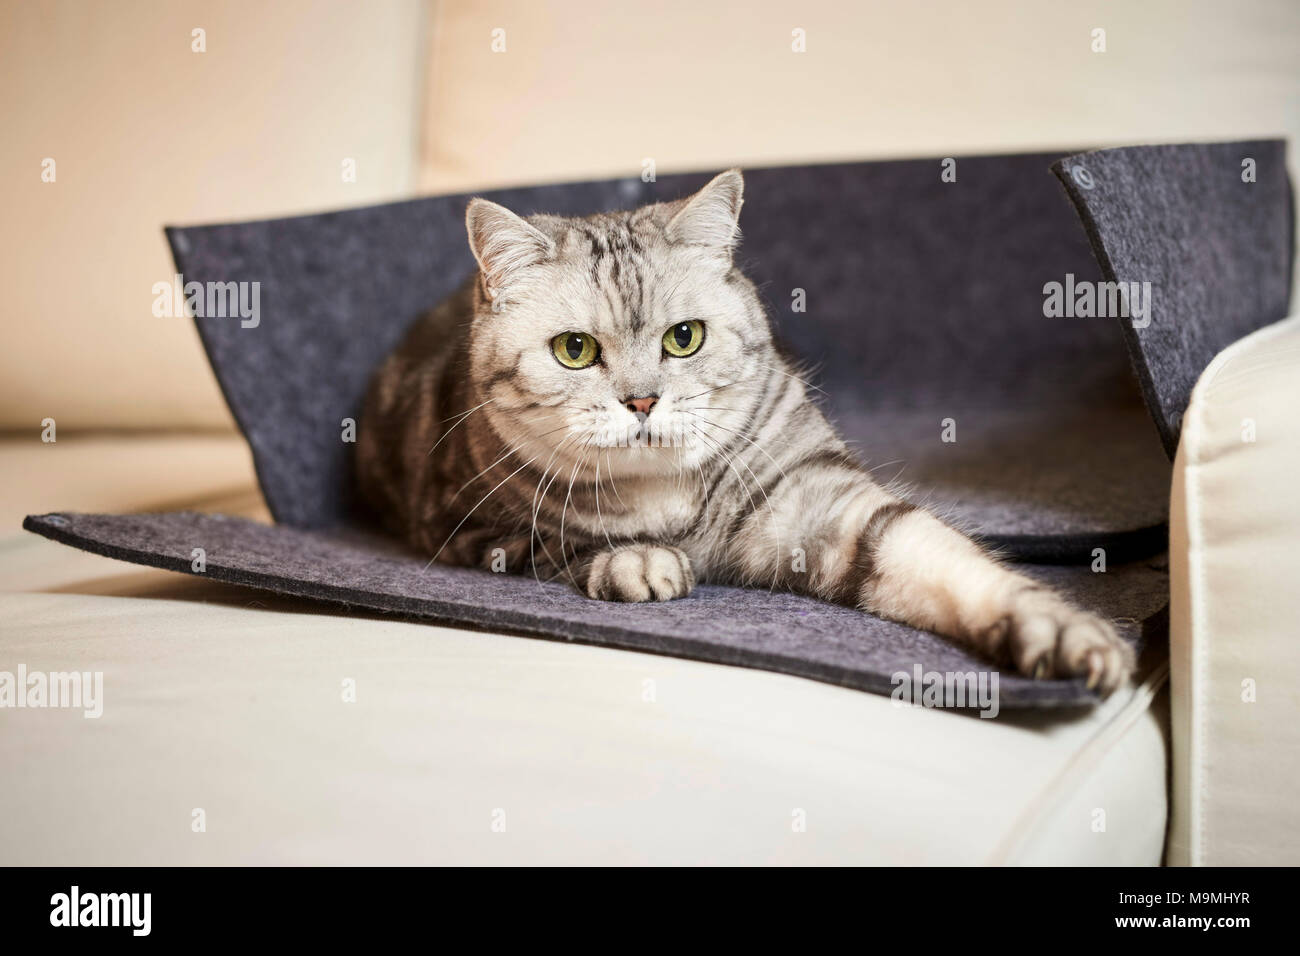 British Shorthair cat. Tabby adult lying in an opened pet bed made of felt. Germany - Stock Image